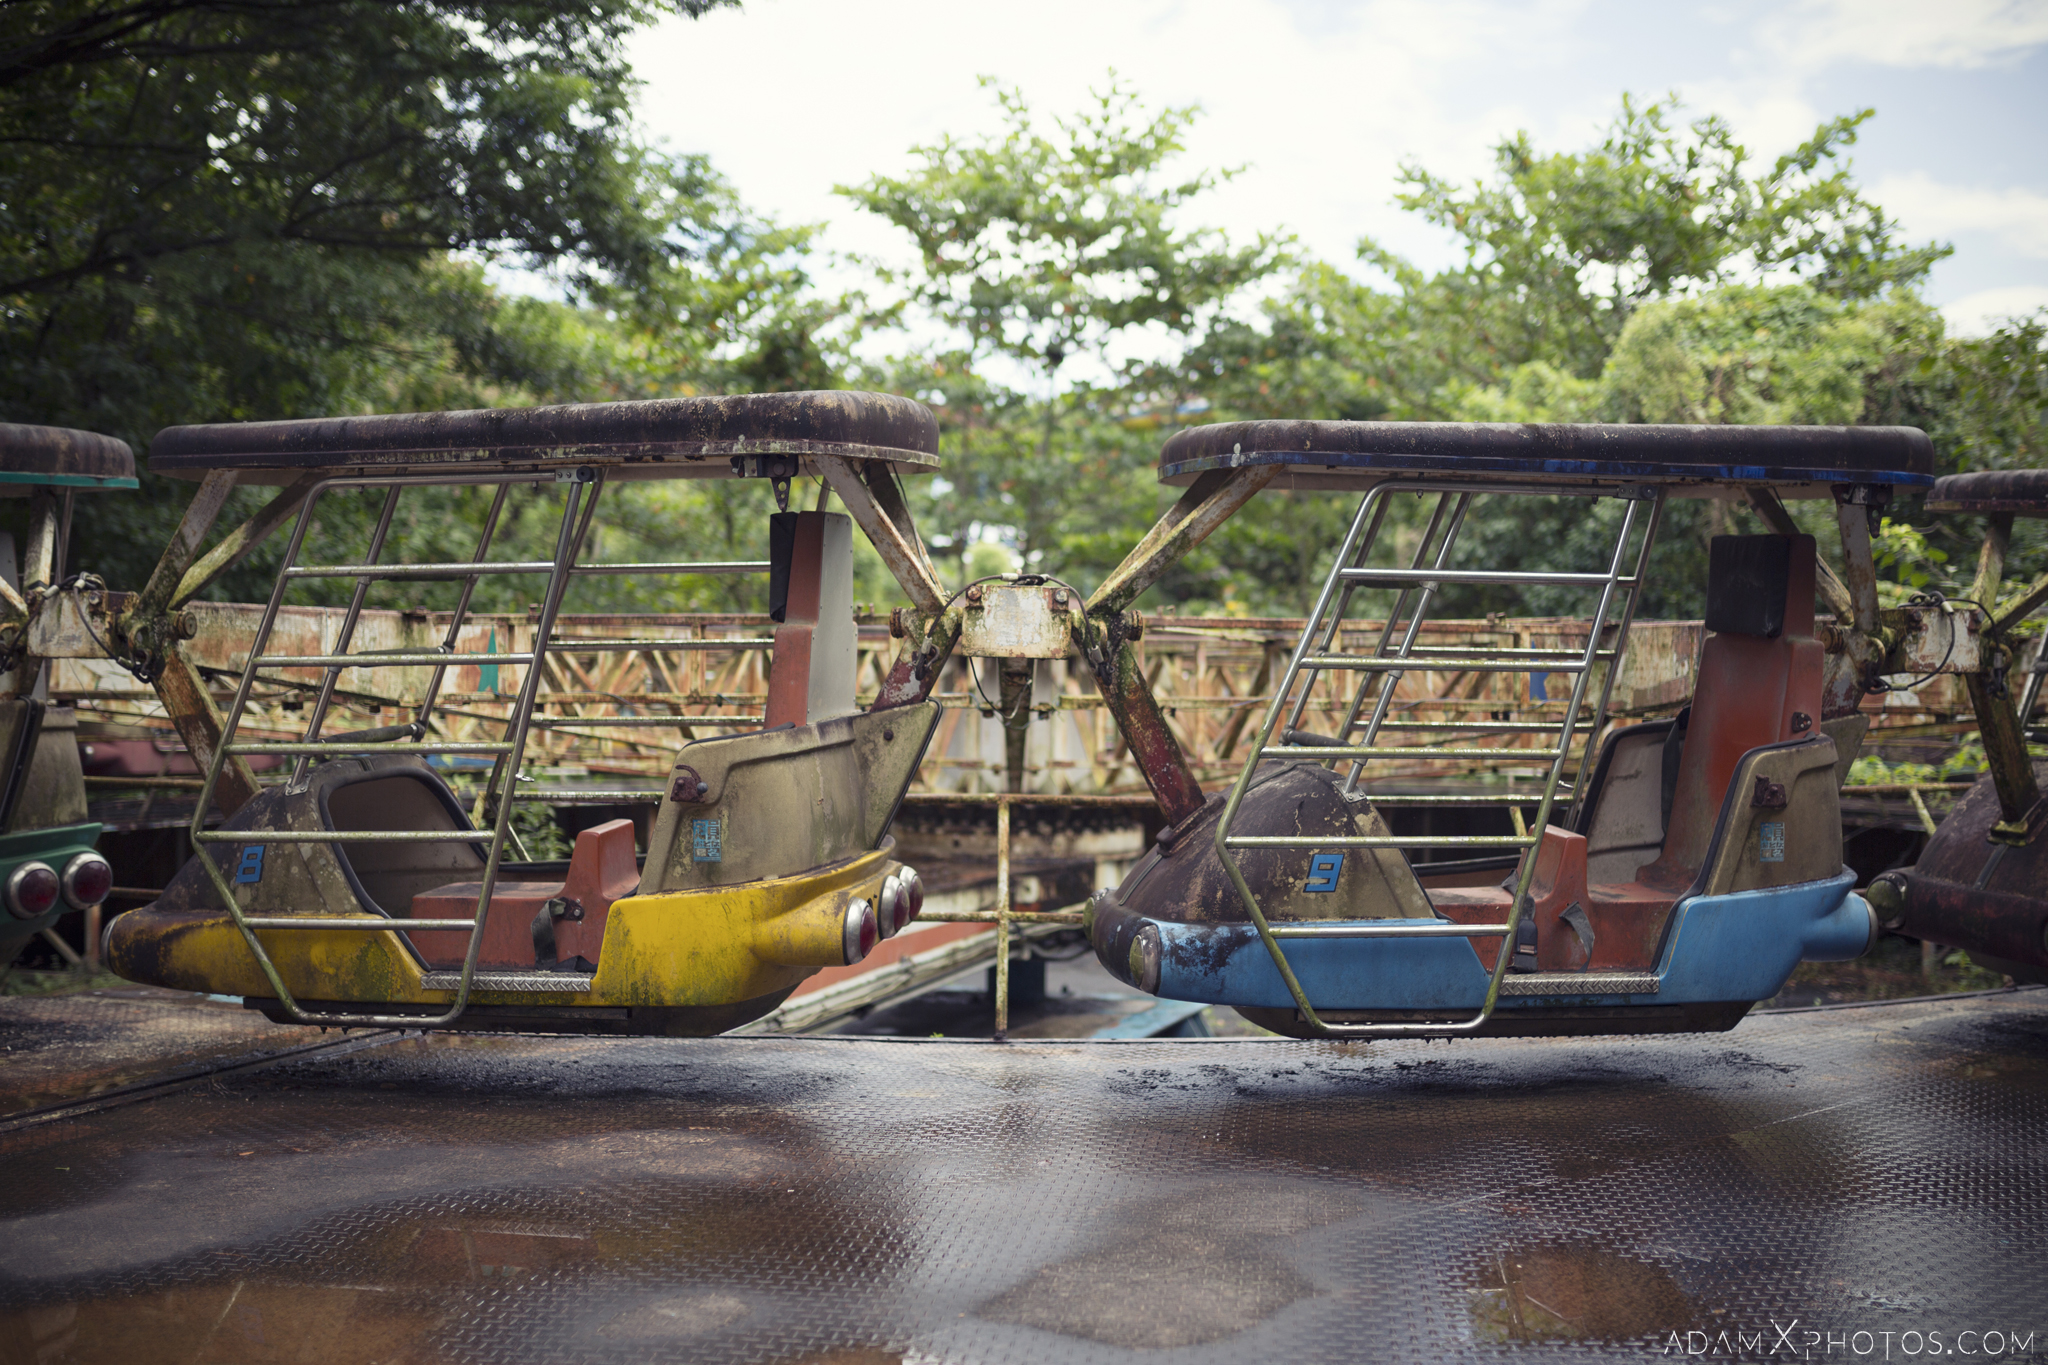 Ride carriages Happy World Theme Park Amusement Park Fairground Myanmar Burma Yangon Rangoon Urbex Adam X Urban Exploration Access 2016 Abandoned decay lost forgotten derelict location creepy haunting eerie